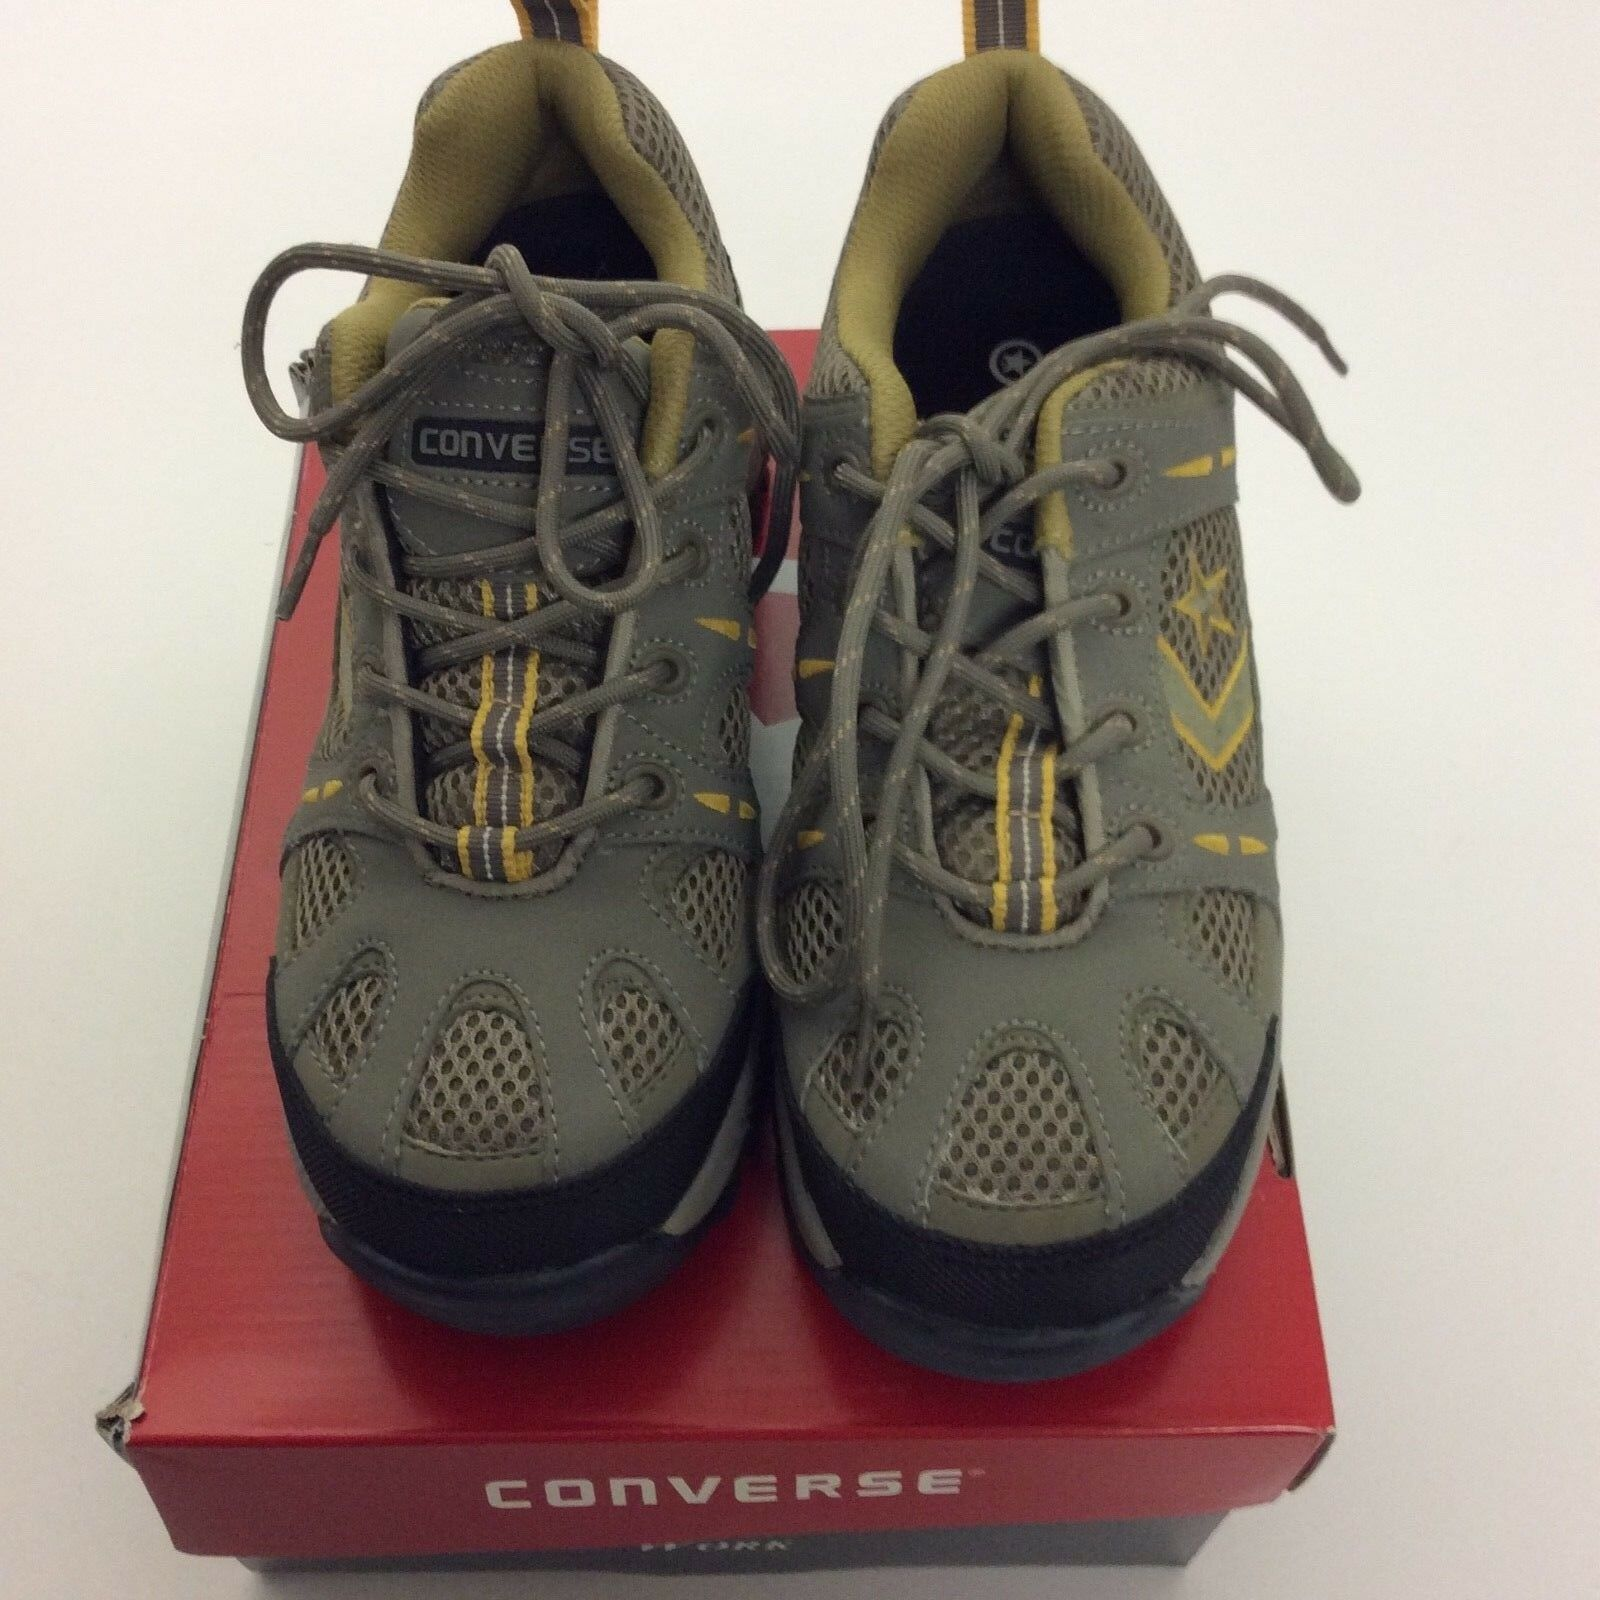 Converse Mountainaire Trail Hiker Comp Toe Safety schuhe Wms 7M NEW